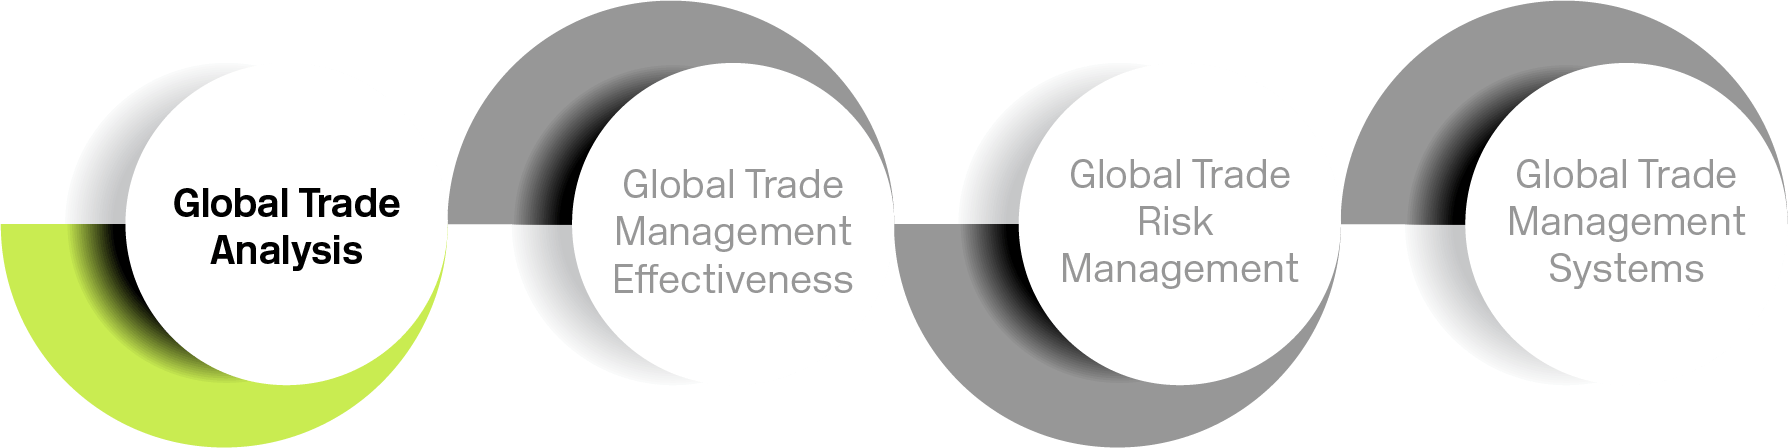 Global trade analysis graphic